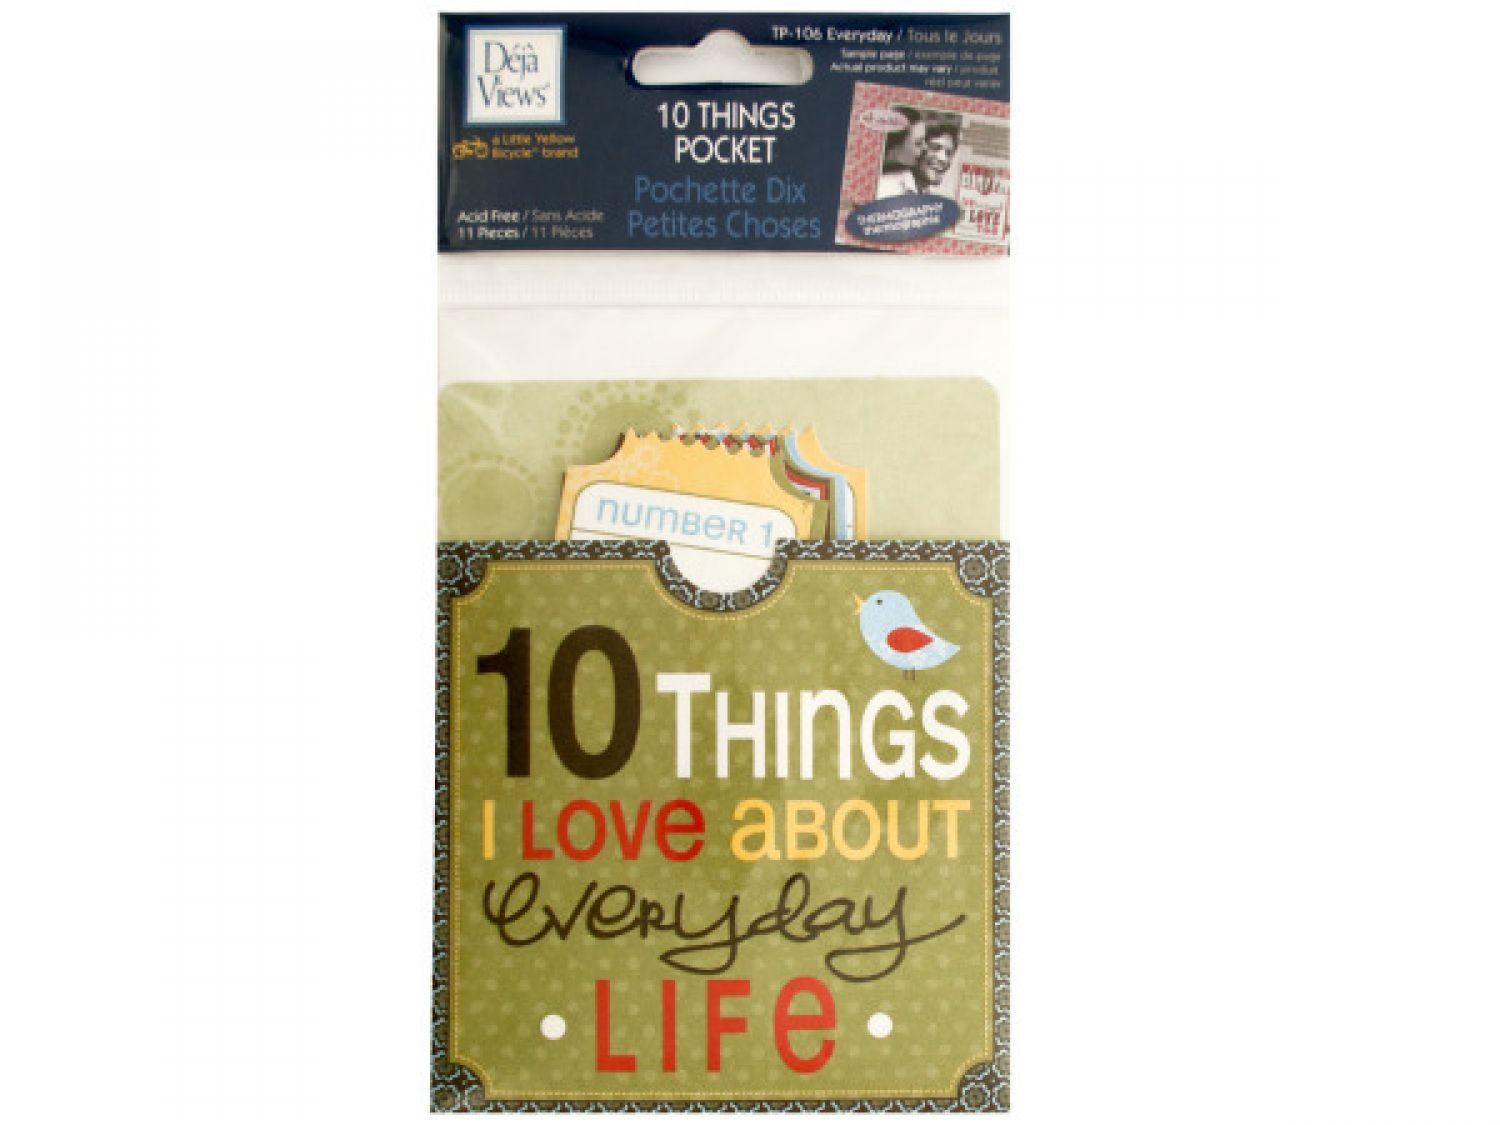 StarSun Depot 10 Things I Love About Everyday Life Journaling Pocket - Set of 24, [Scrapbooking, Scrapbook Accents]